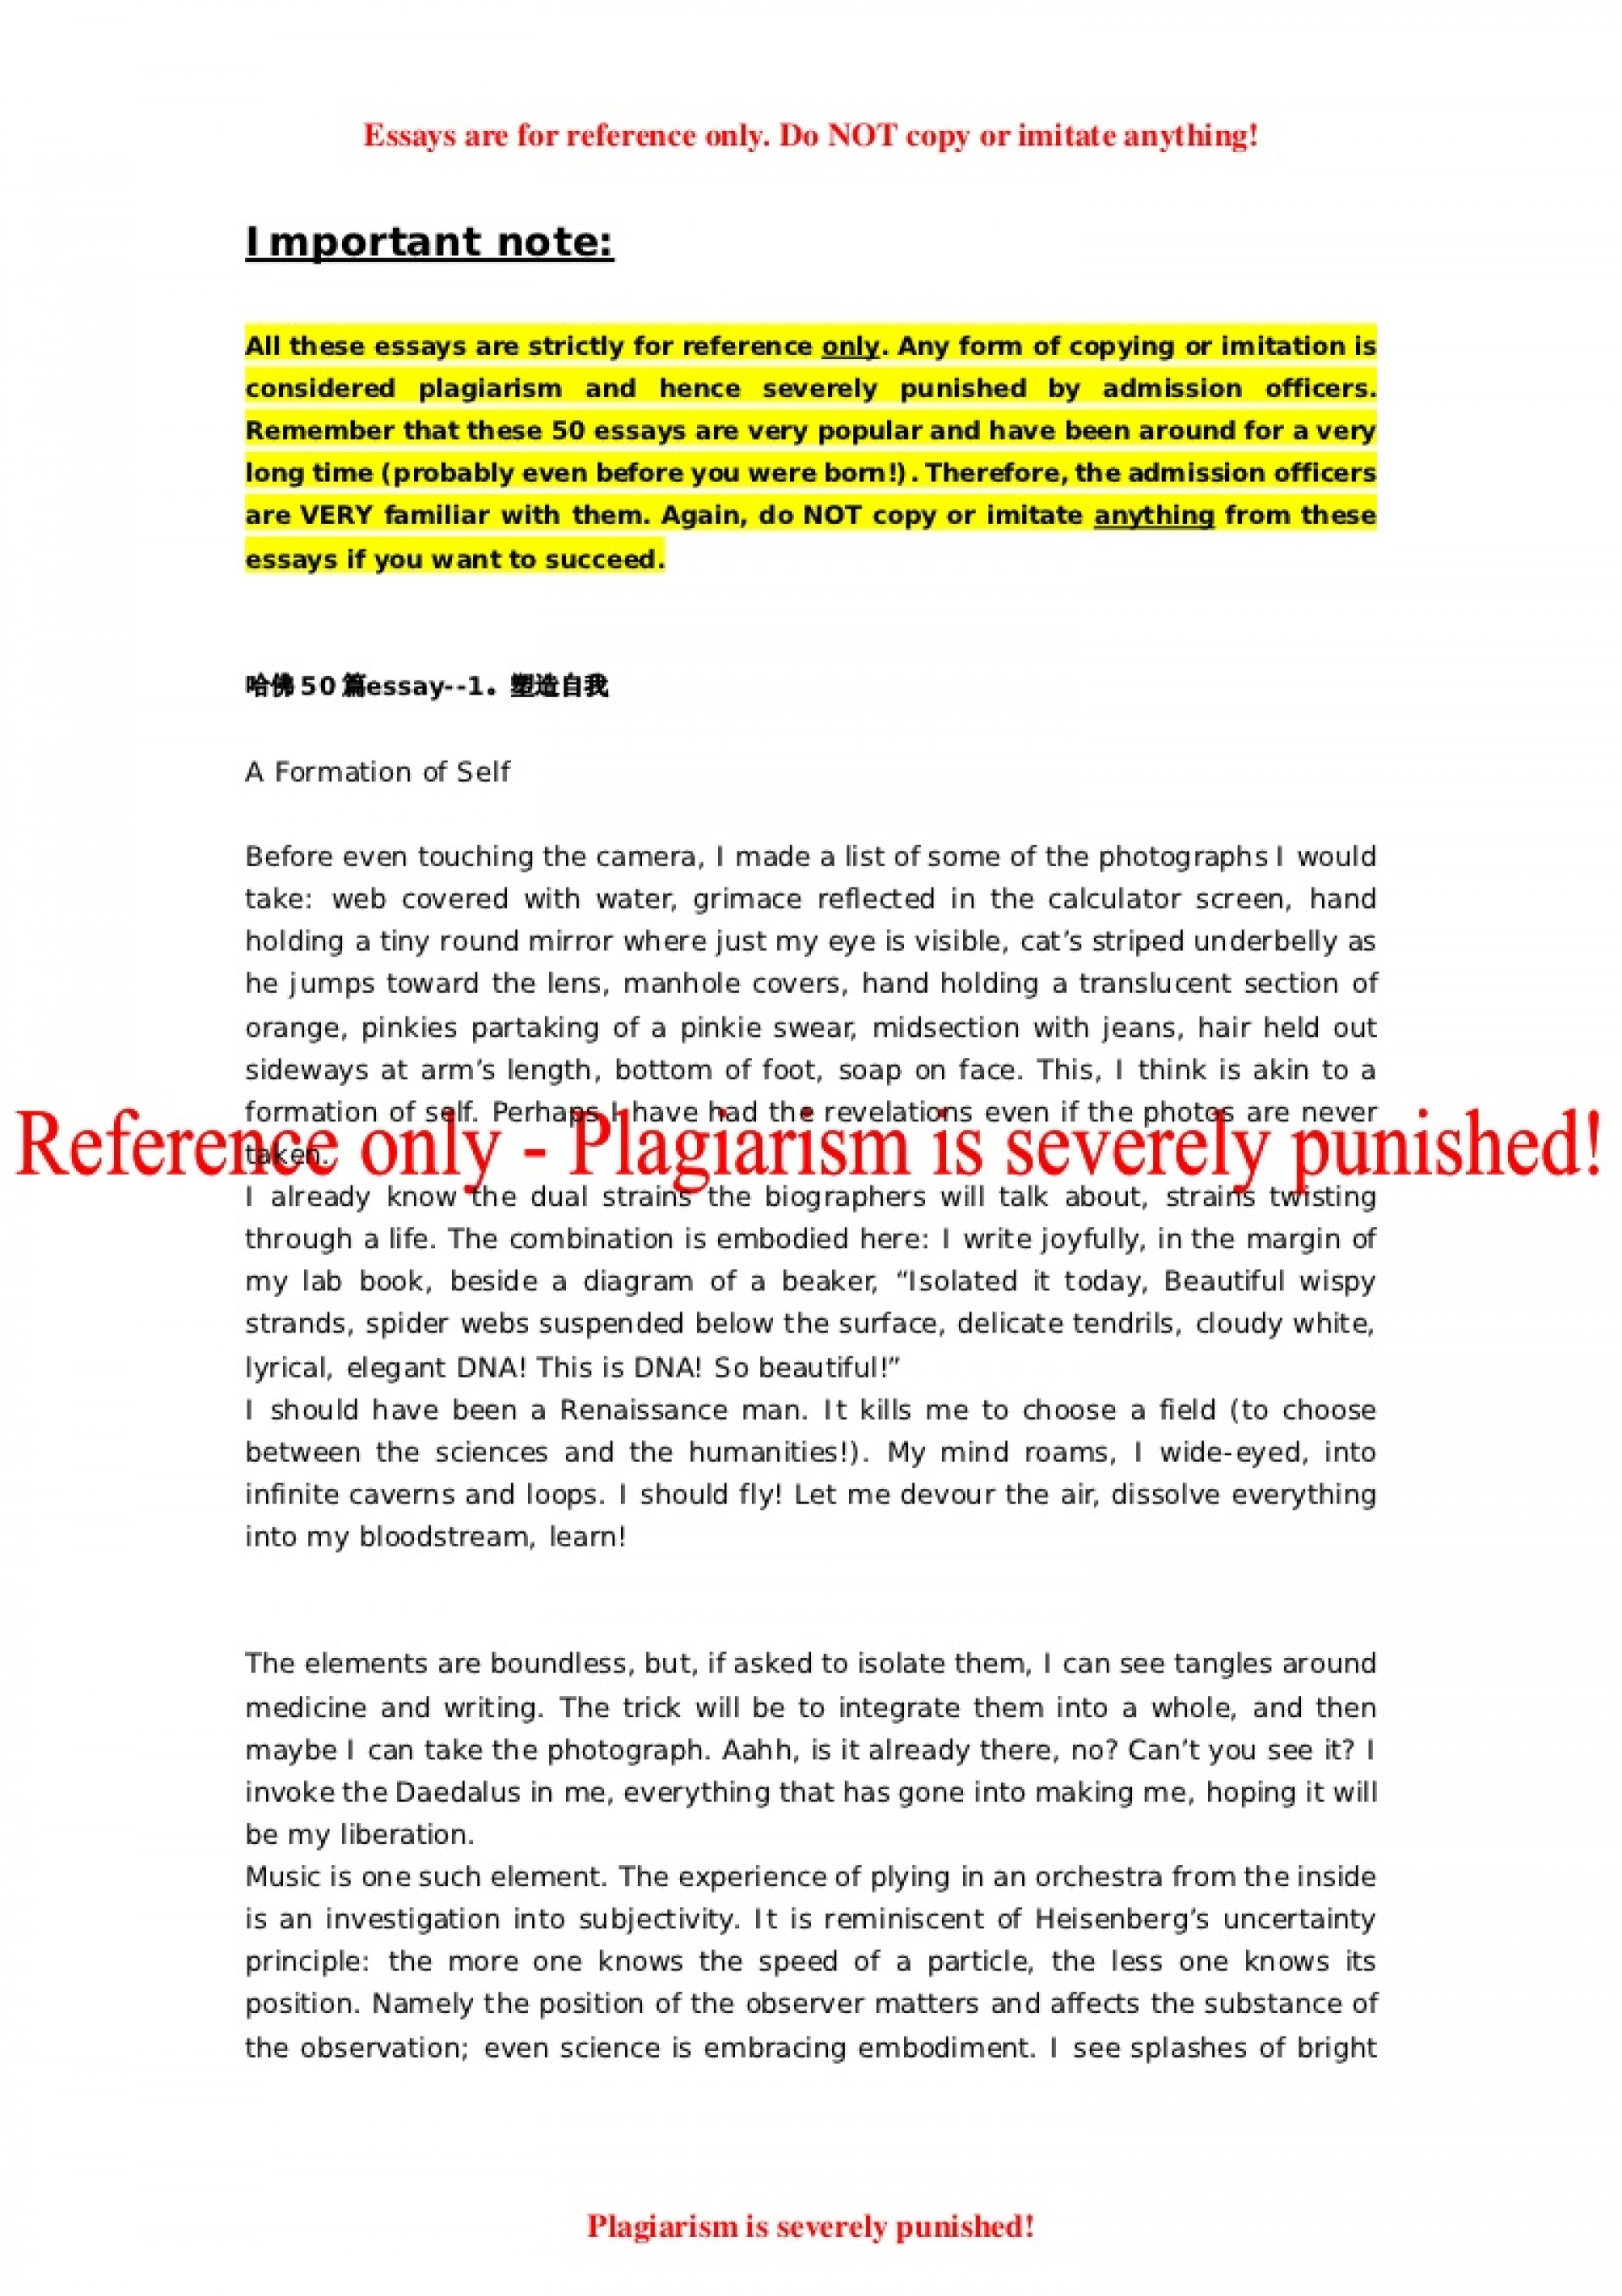 002 Harvard Accepted Essays Essay Example 50successfulharvardapplicationessays Phpapp02 Thumbnail Fantastic Business School Reddit College Book 1920